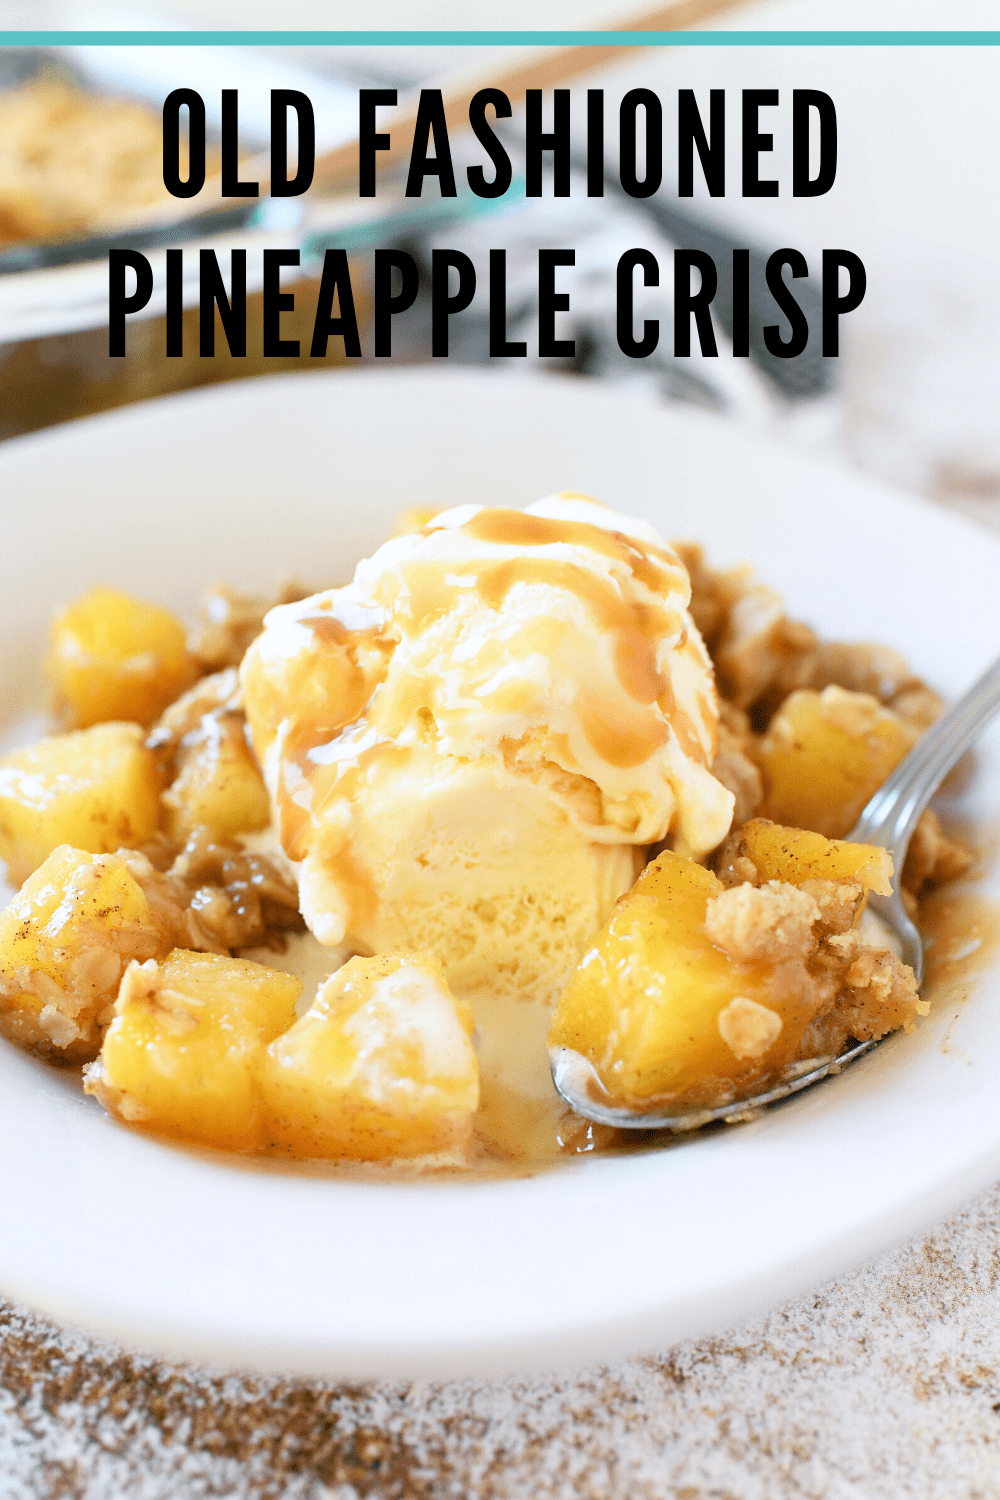 Classic Pineapple Crisp Recipe